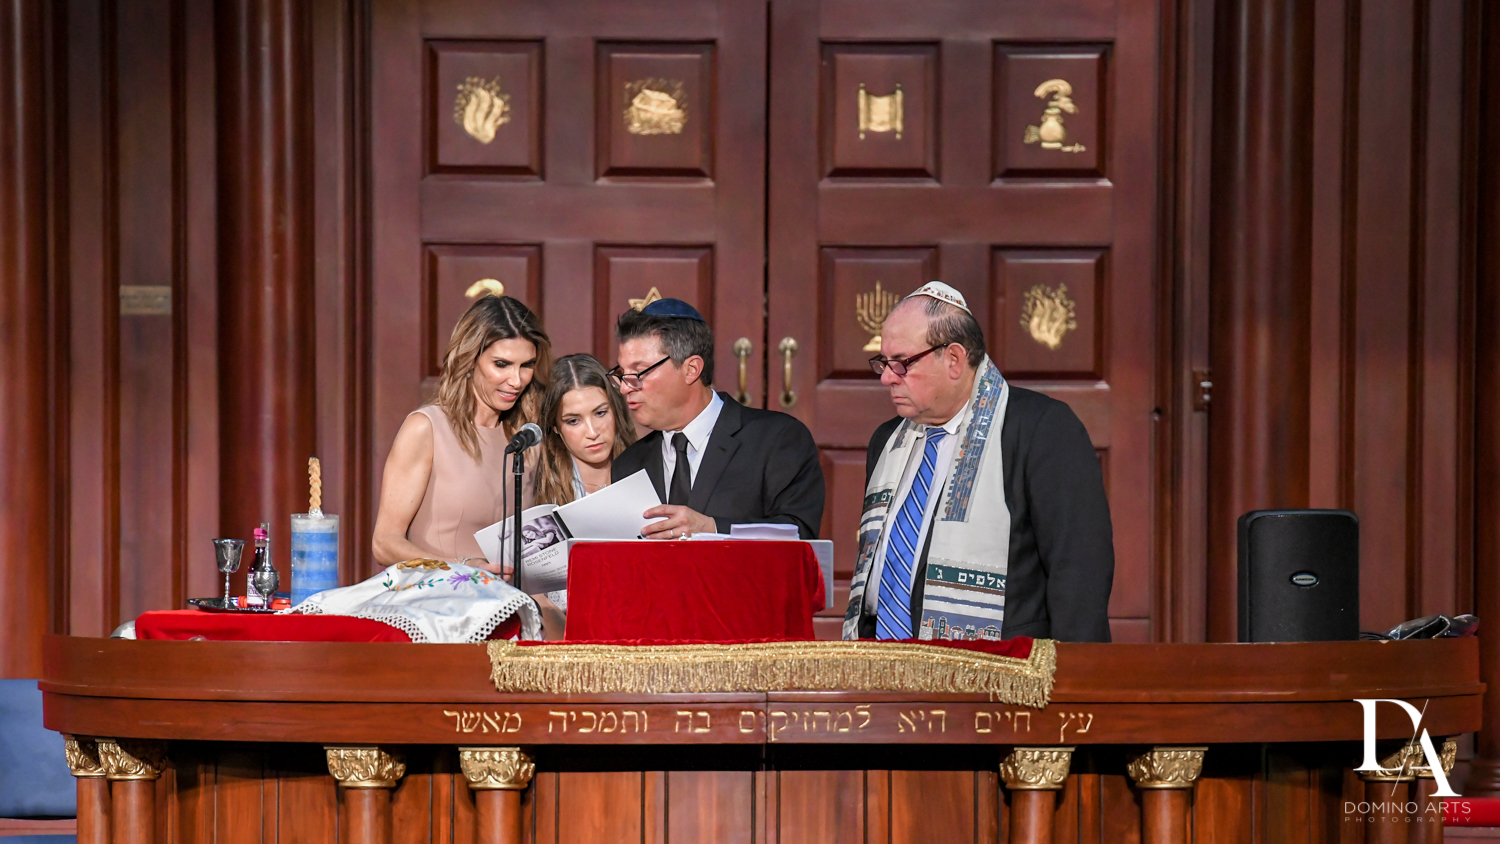 Temple Emmanuel Miami Beach Bat Mitzvah by Domino Arts Photography